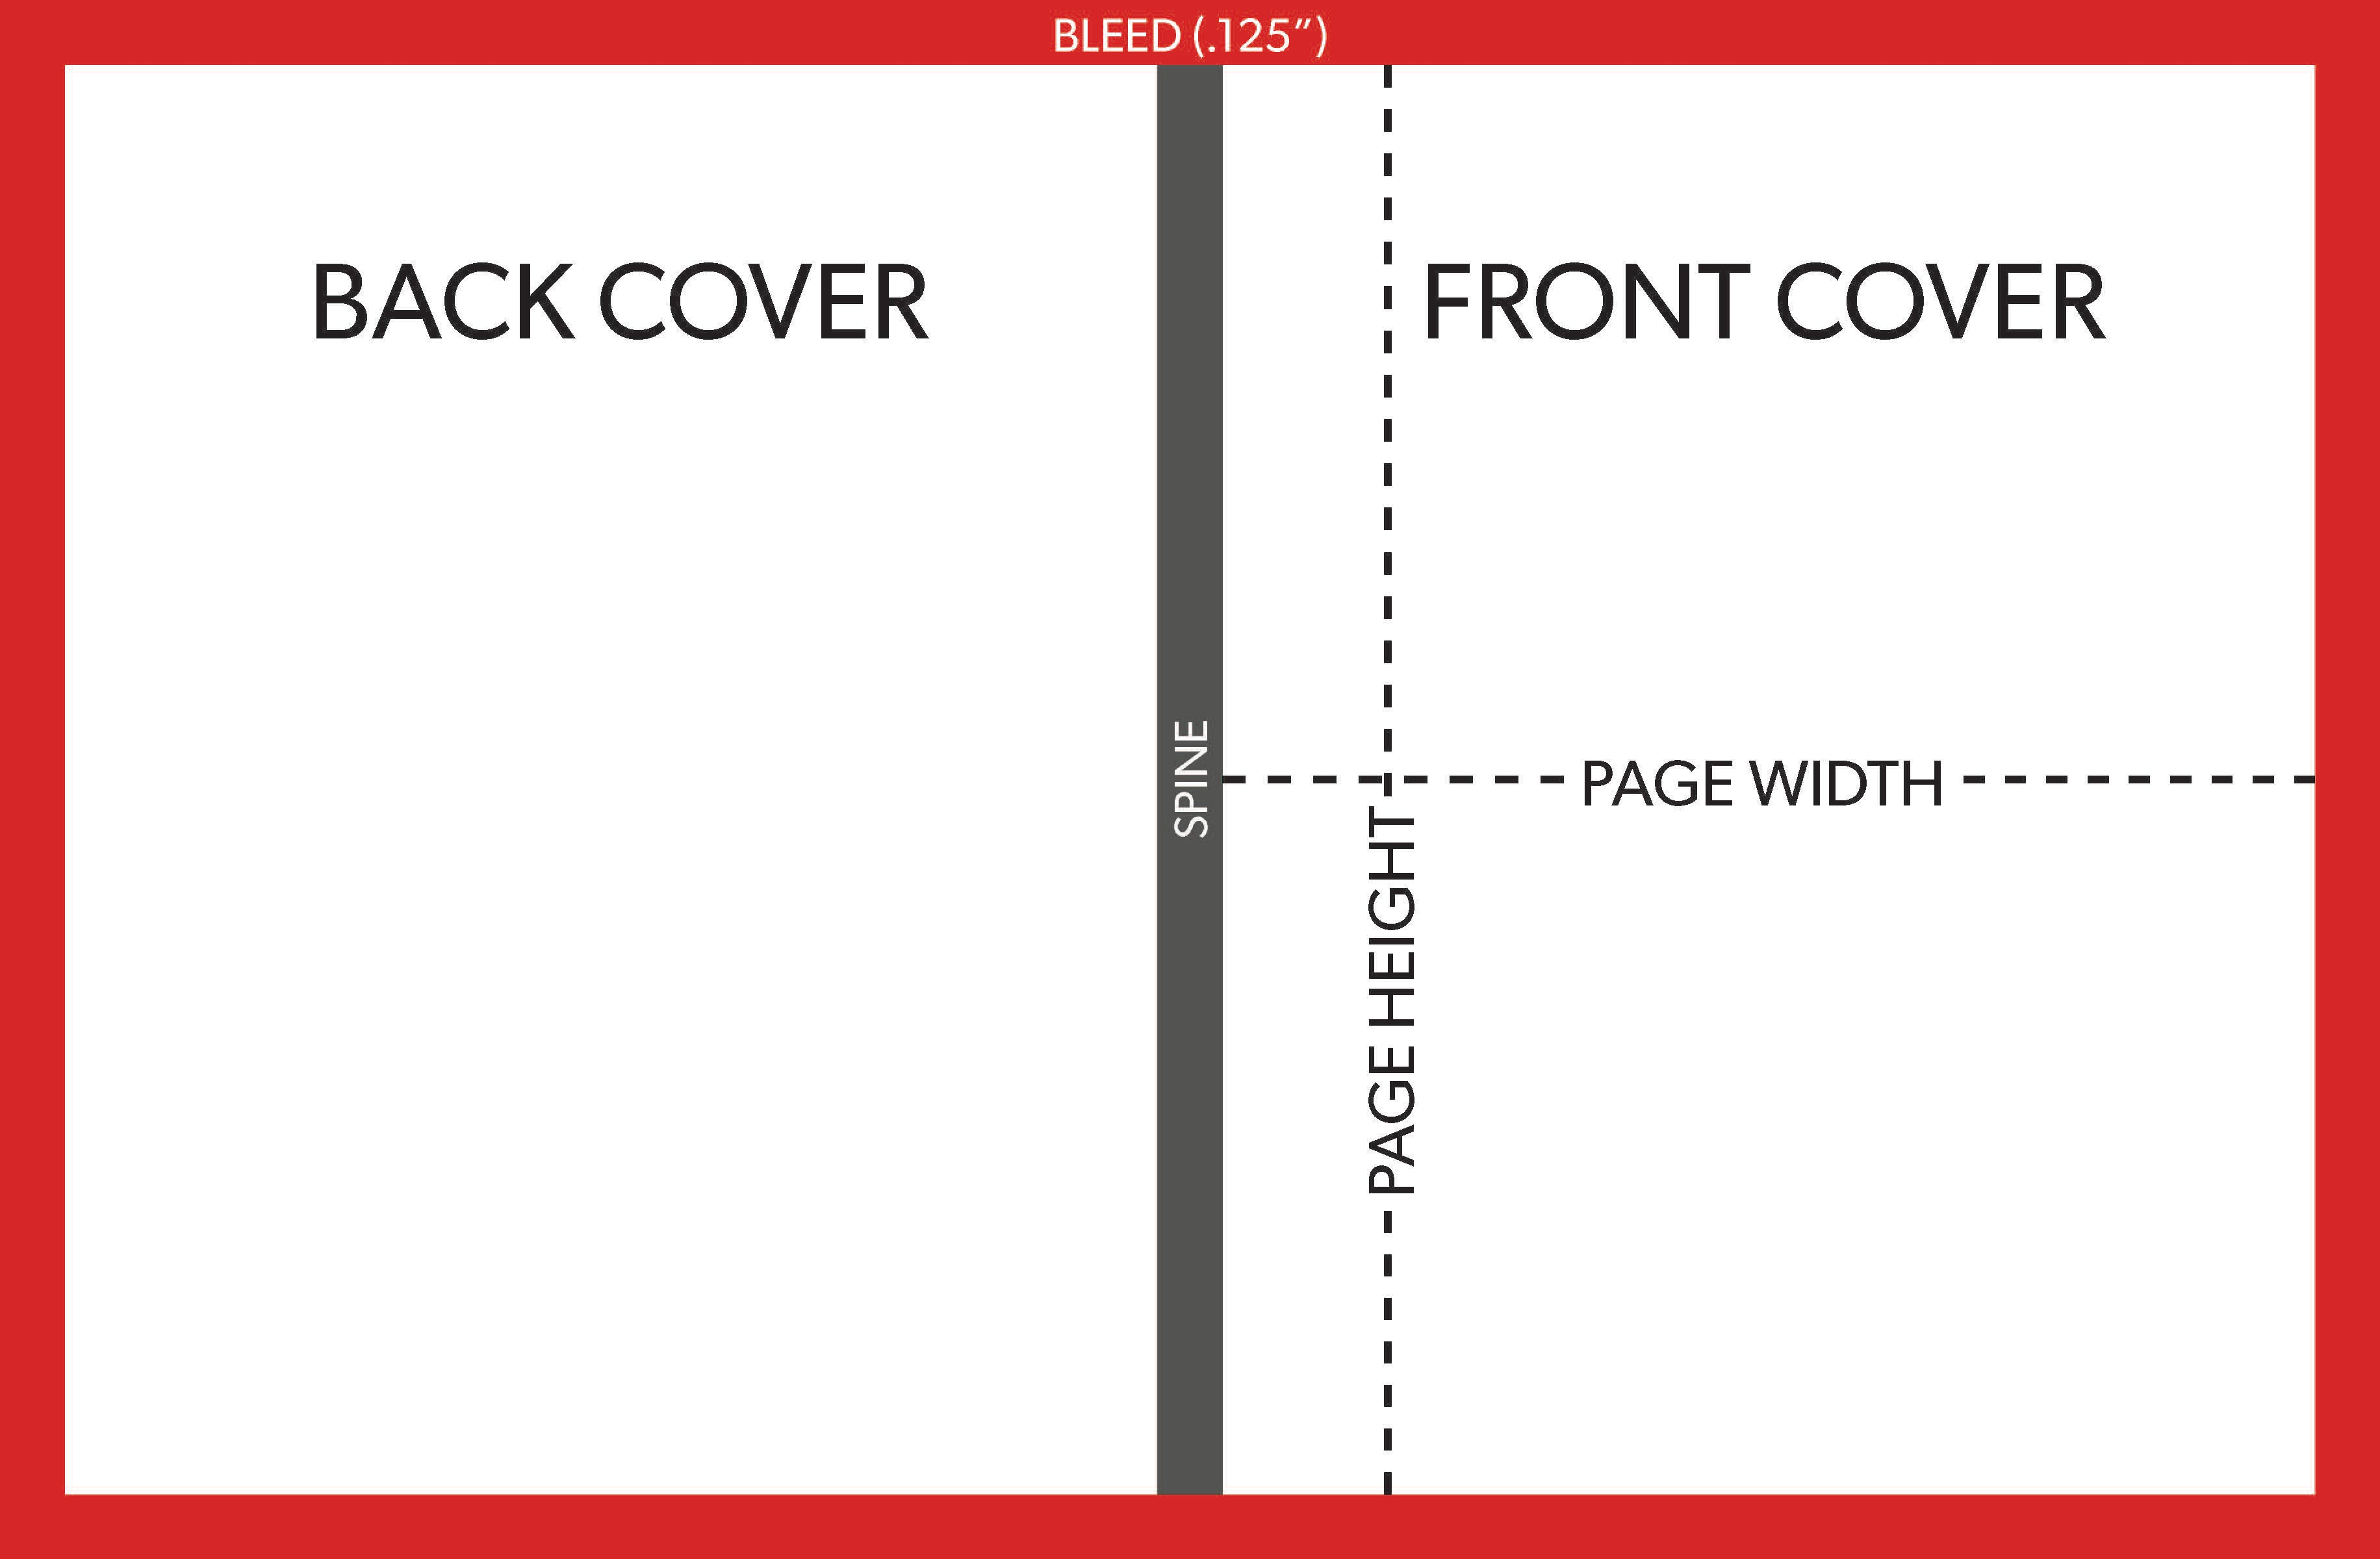 Book Jacket Template. 125 inches away from the trim line since ...